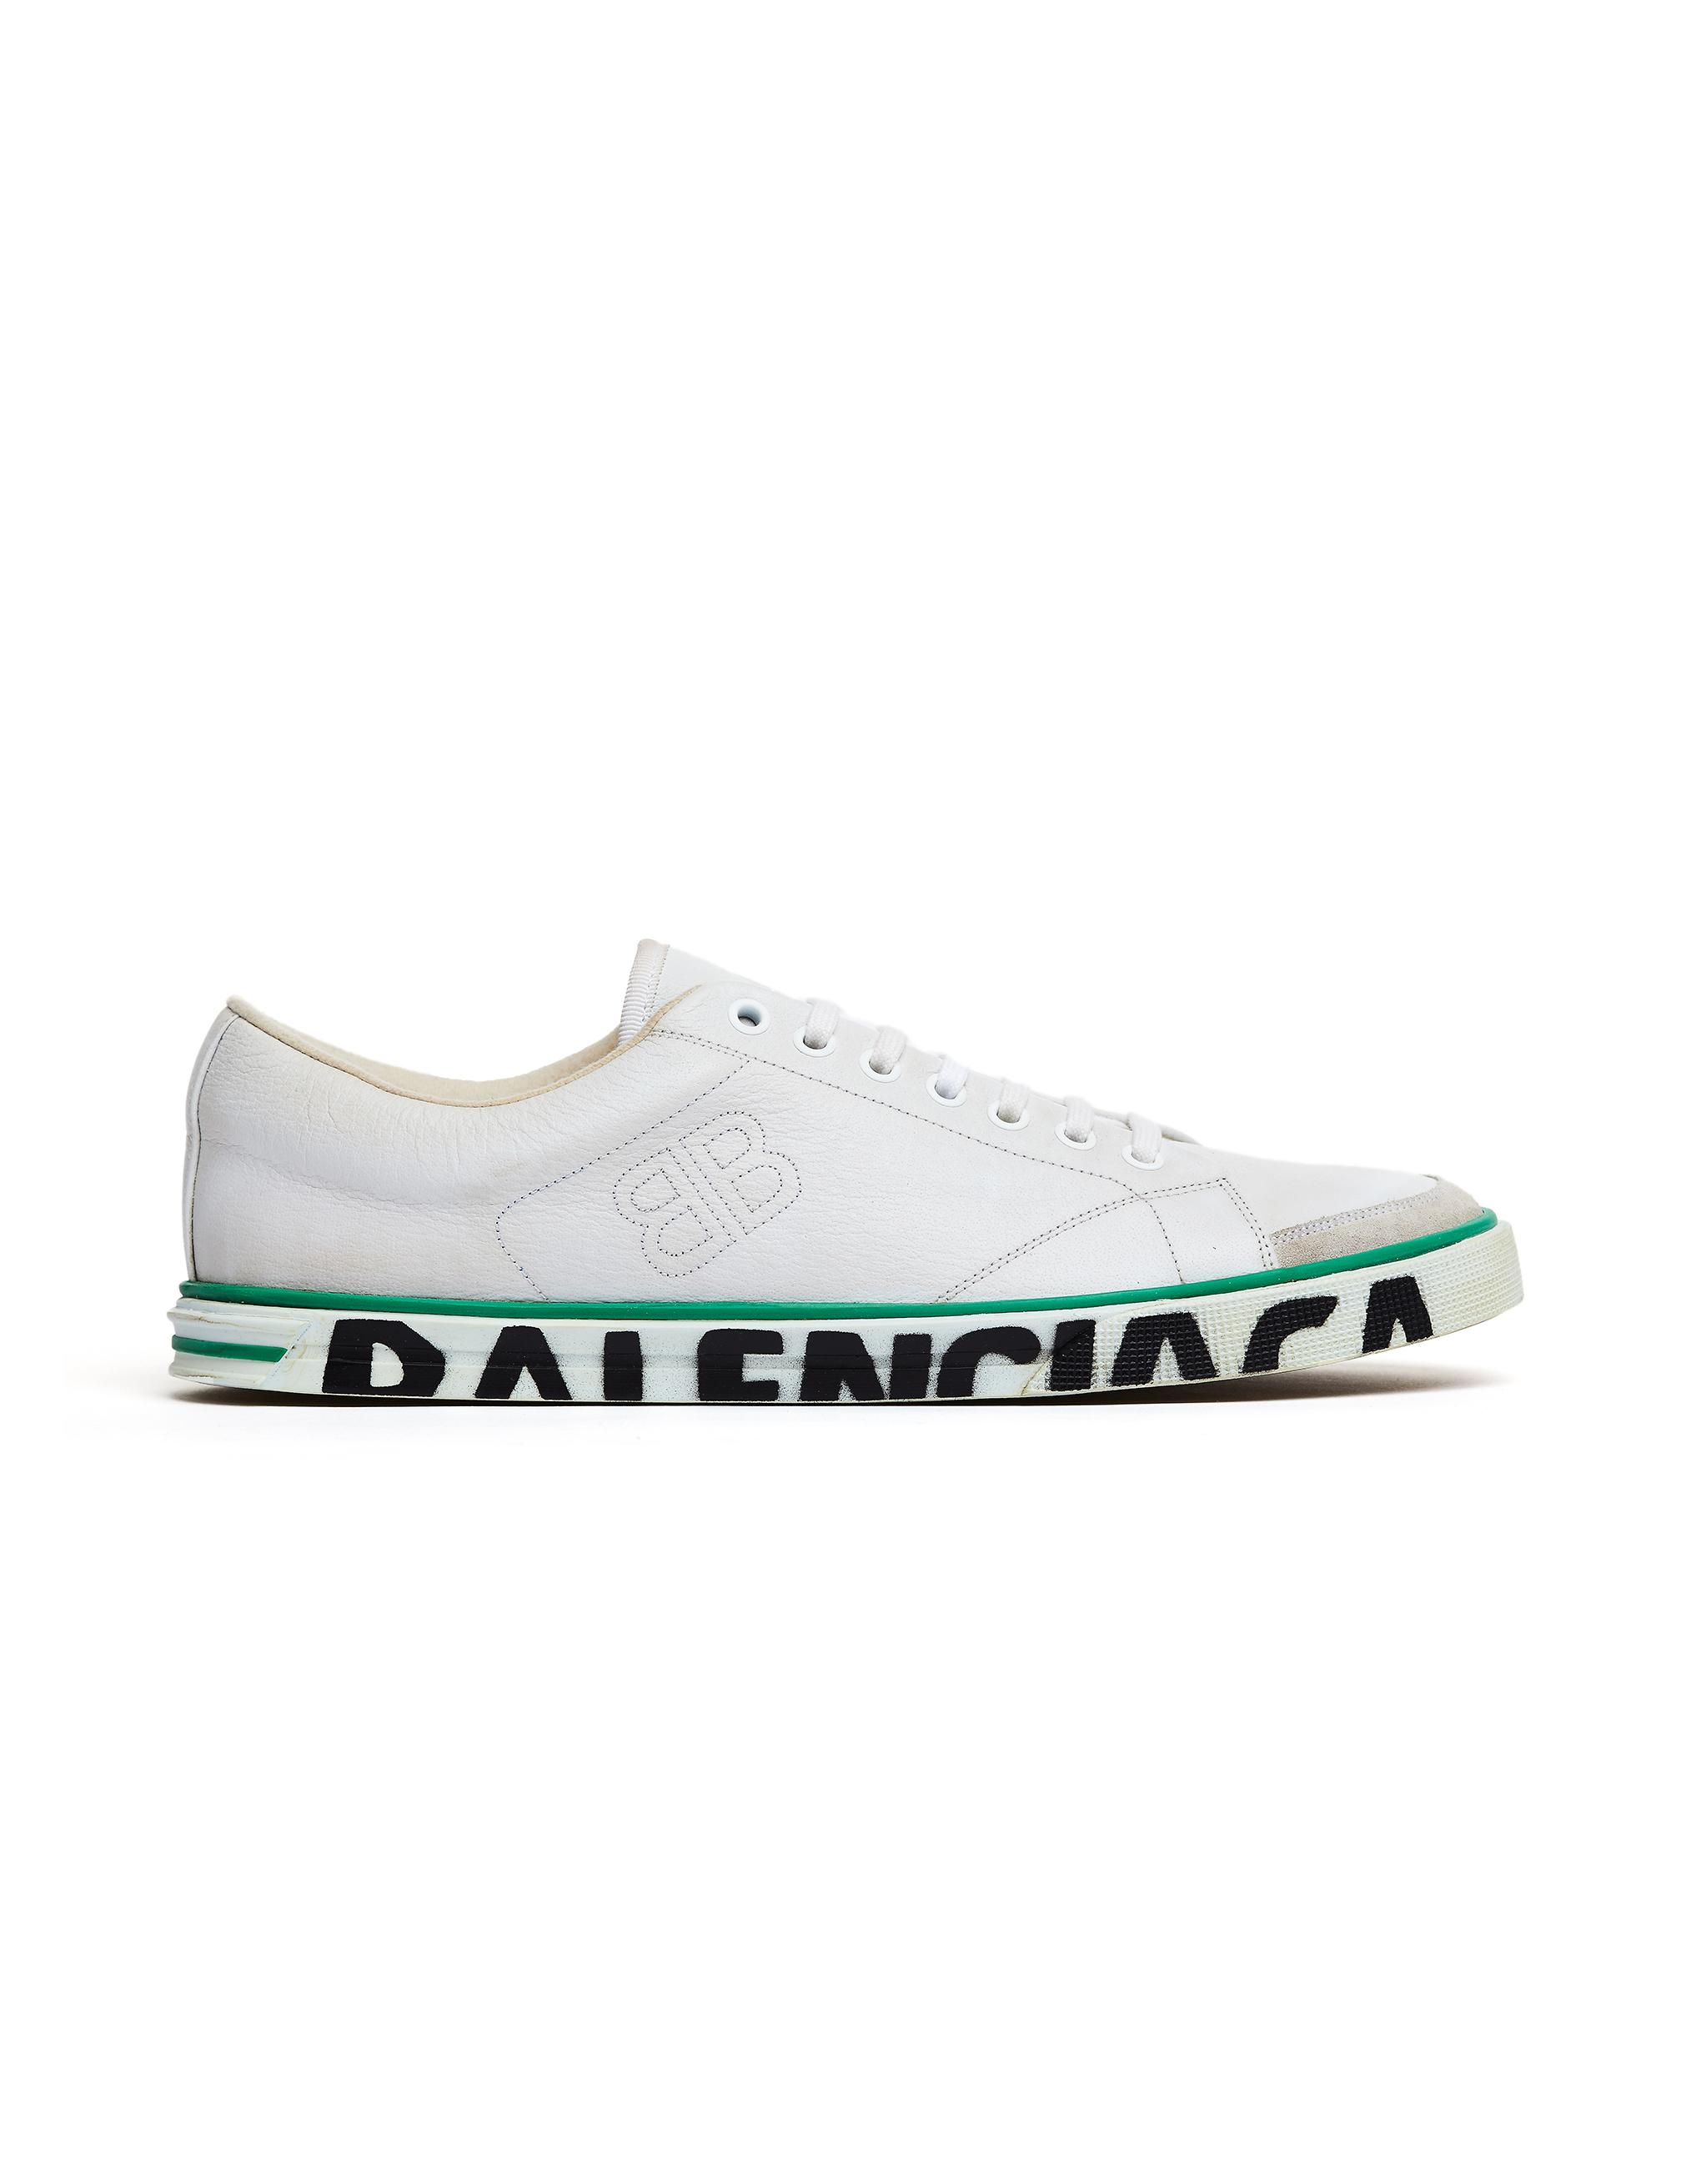 df1012bbd8a5 Lyst - Balenciaga White Leather Match Sneakers in White for Men ...